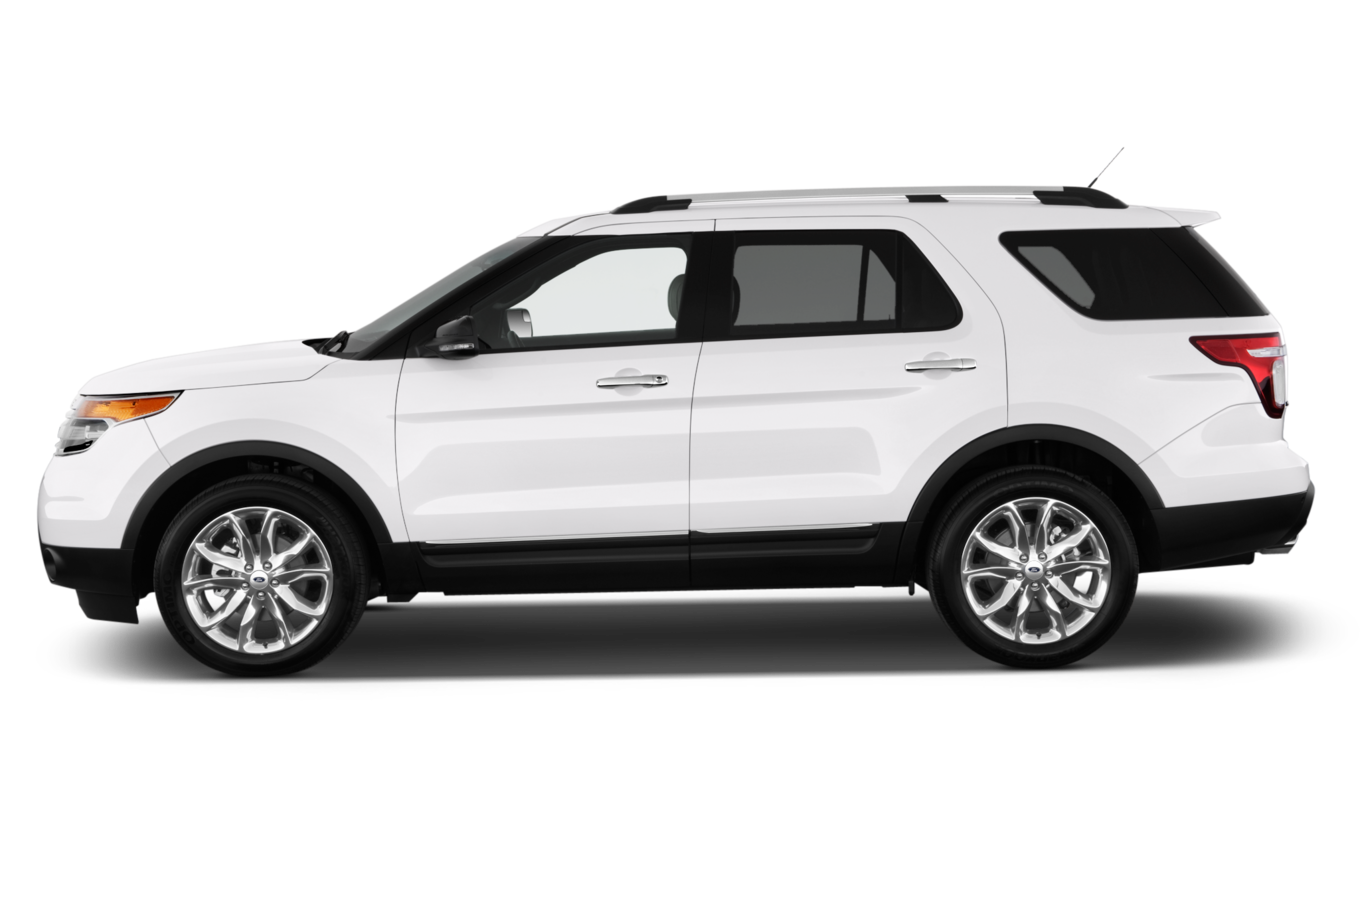 2015 Ford Explorer Reviews And Rating Motor Trend With Images Ford Explorer 2013 Ford Explorer 2014 Ford Explorer